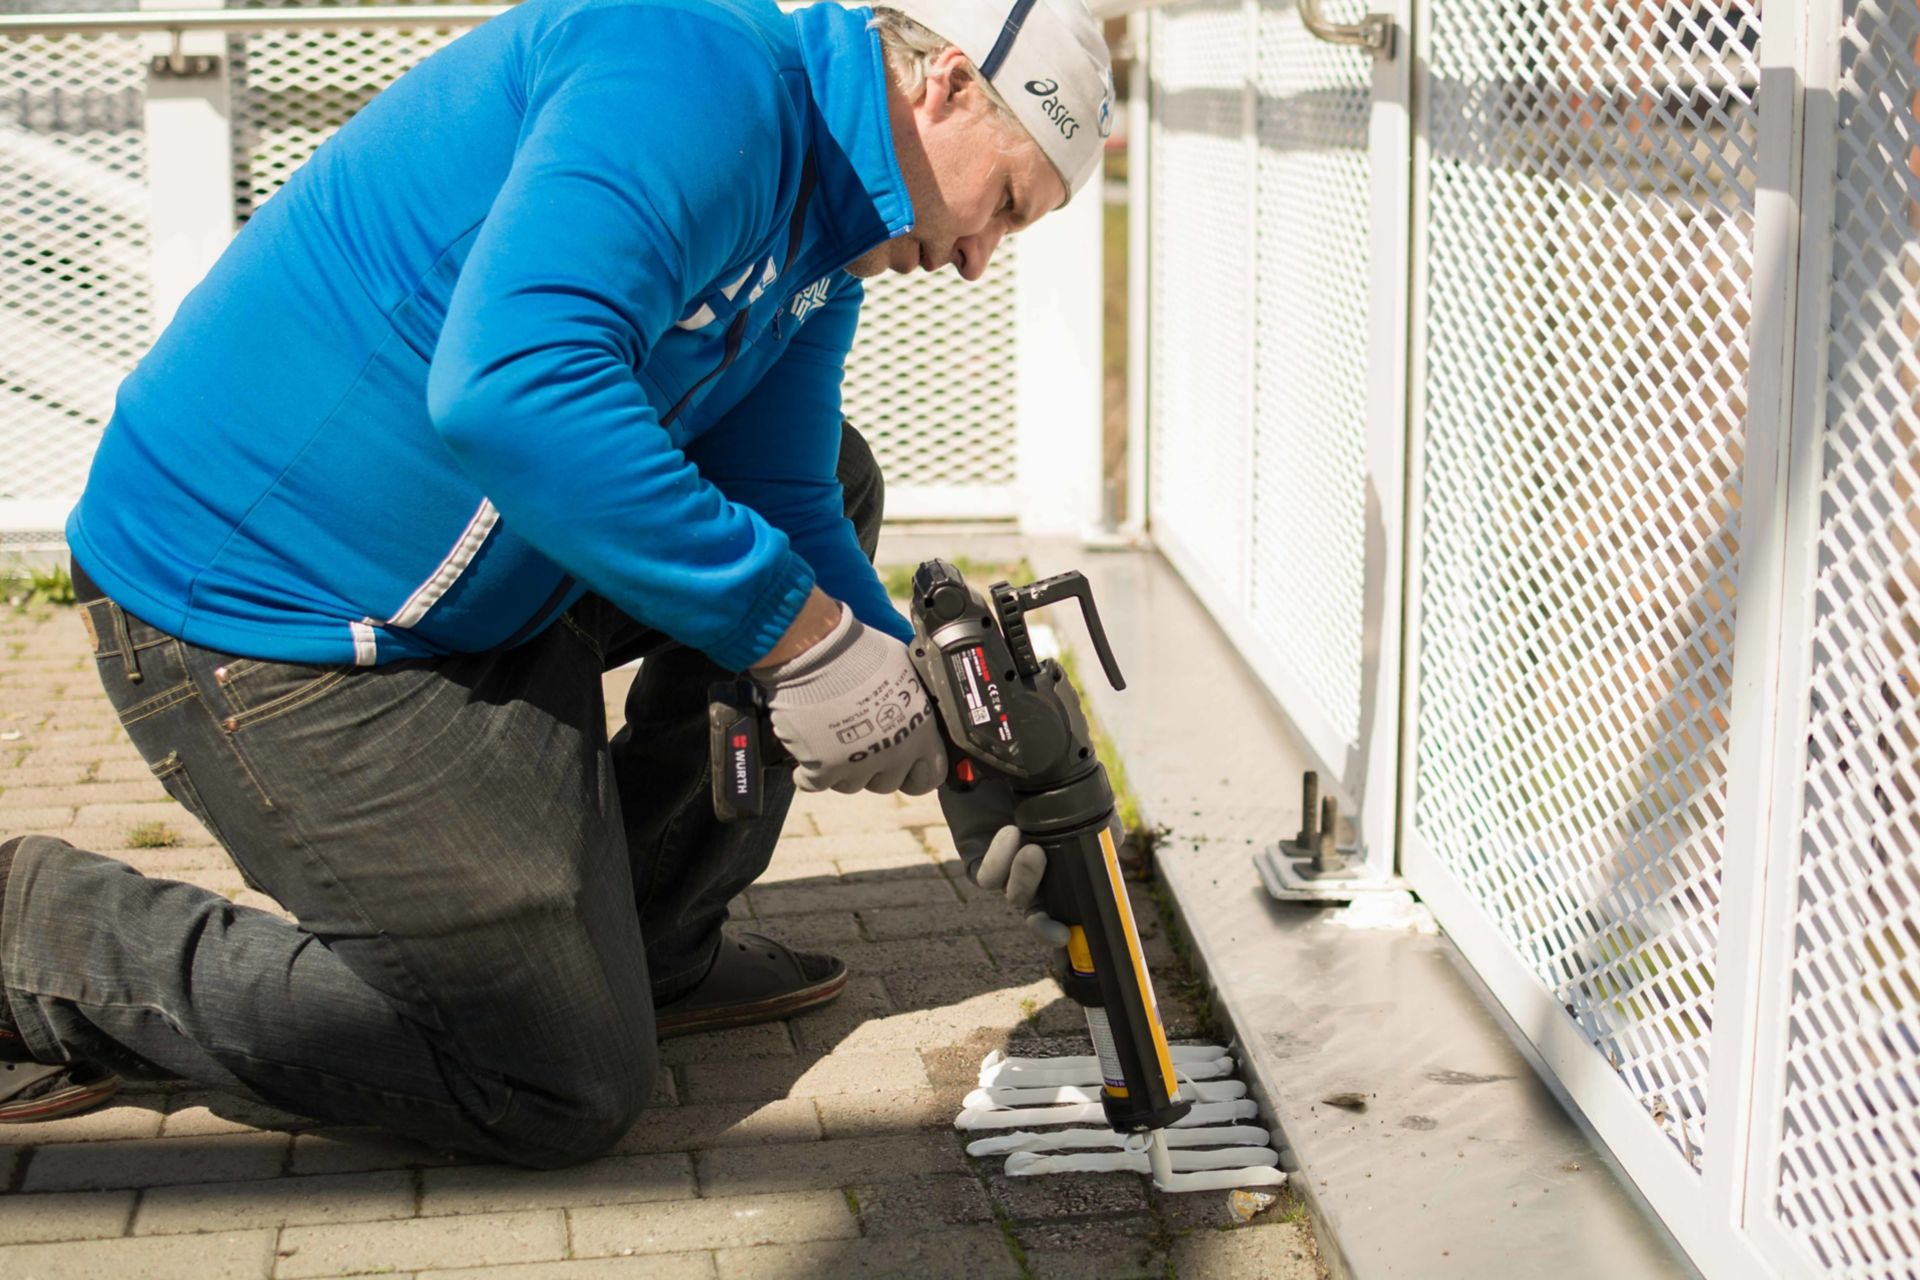 Placing and fixing the scooter sharing station of Samocat Motorcycle Rental Service in Vuosaari district of Helsinki